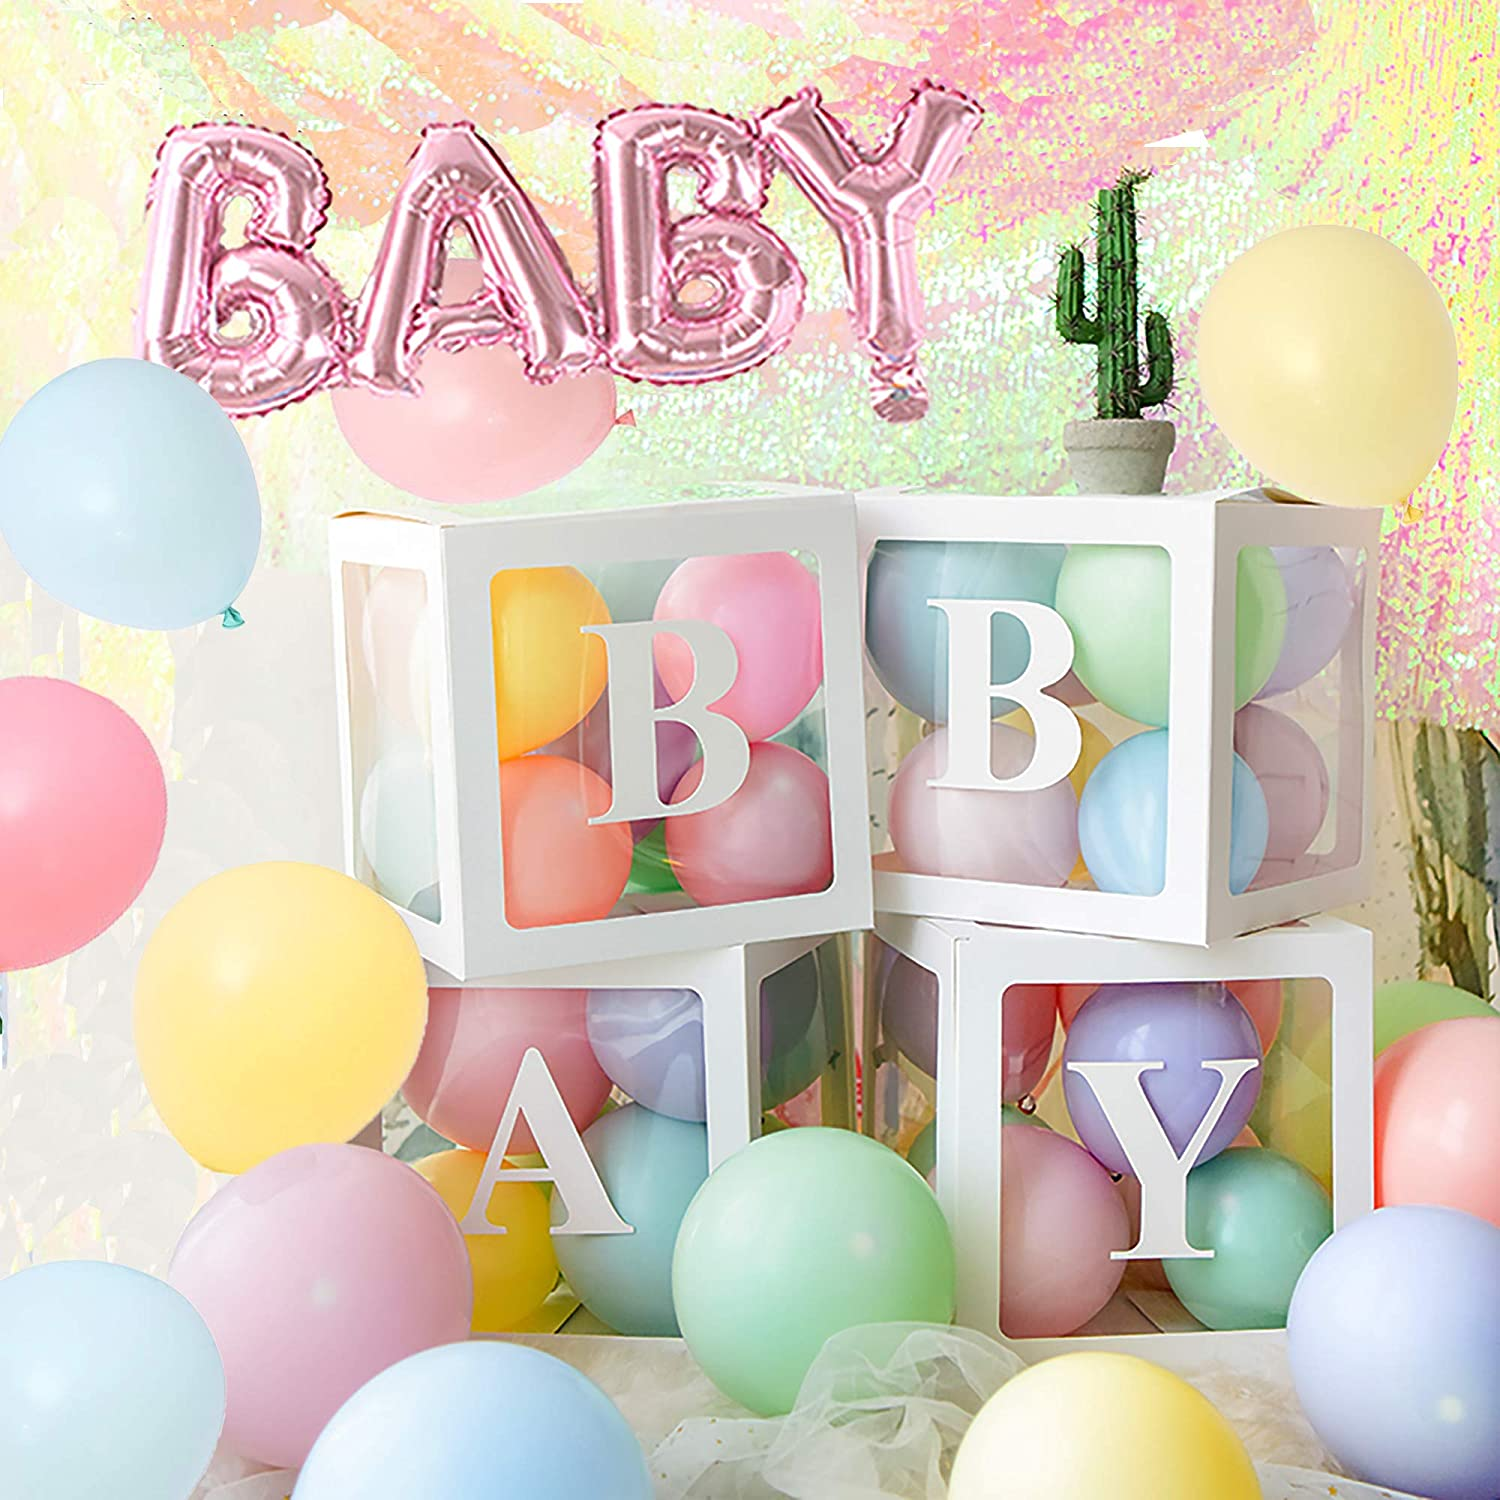 A-Z Baby Shower Boxes Transparent Balloons Packing Letter Christmas Party Decor